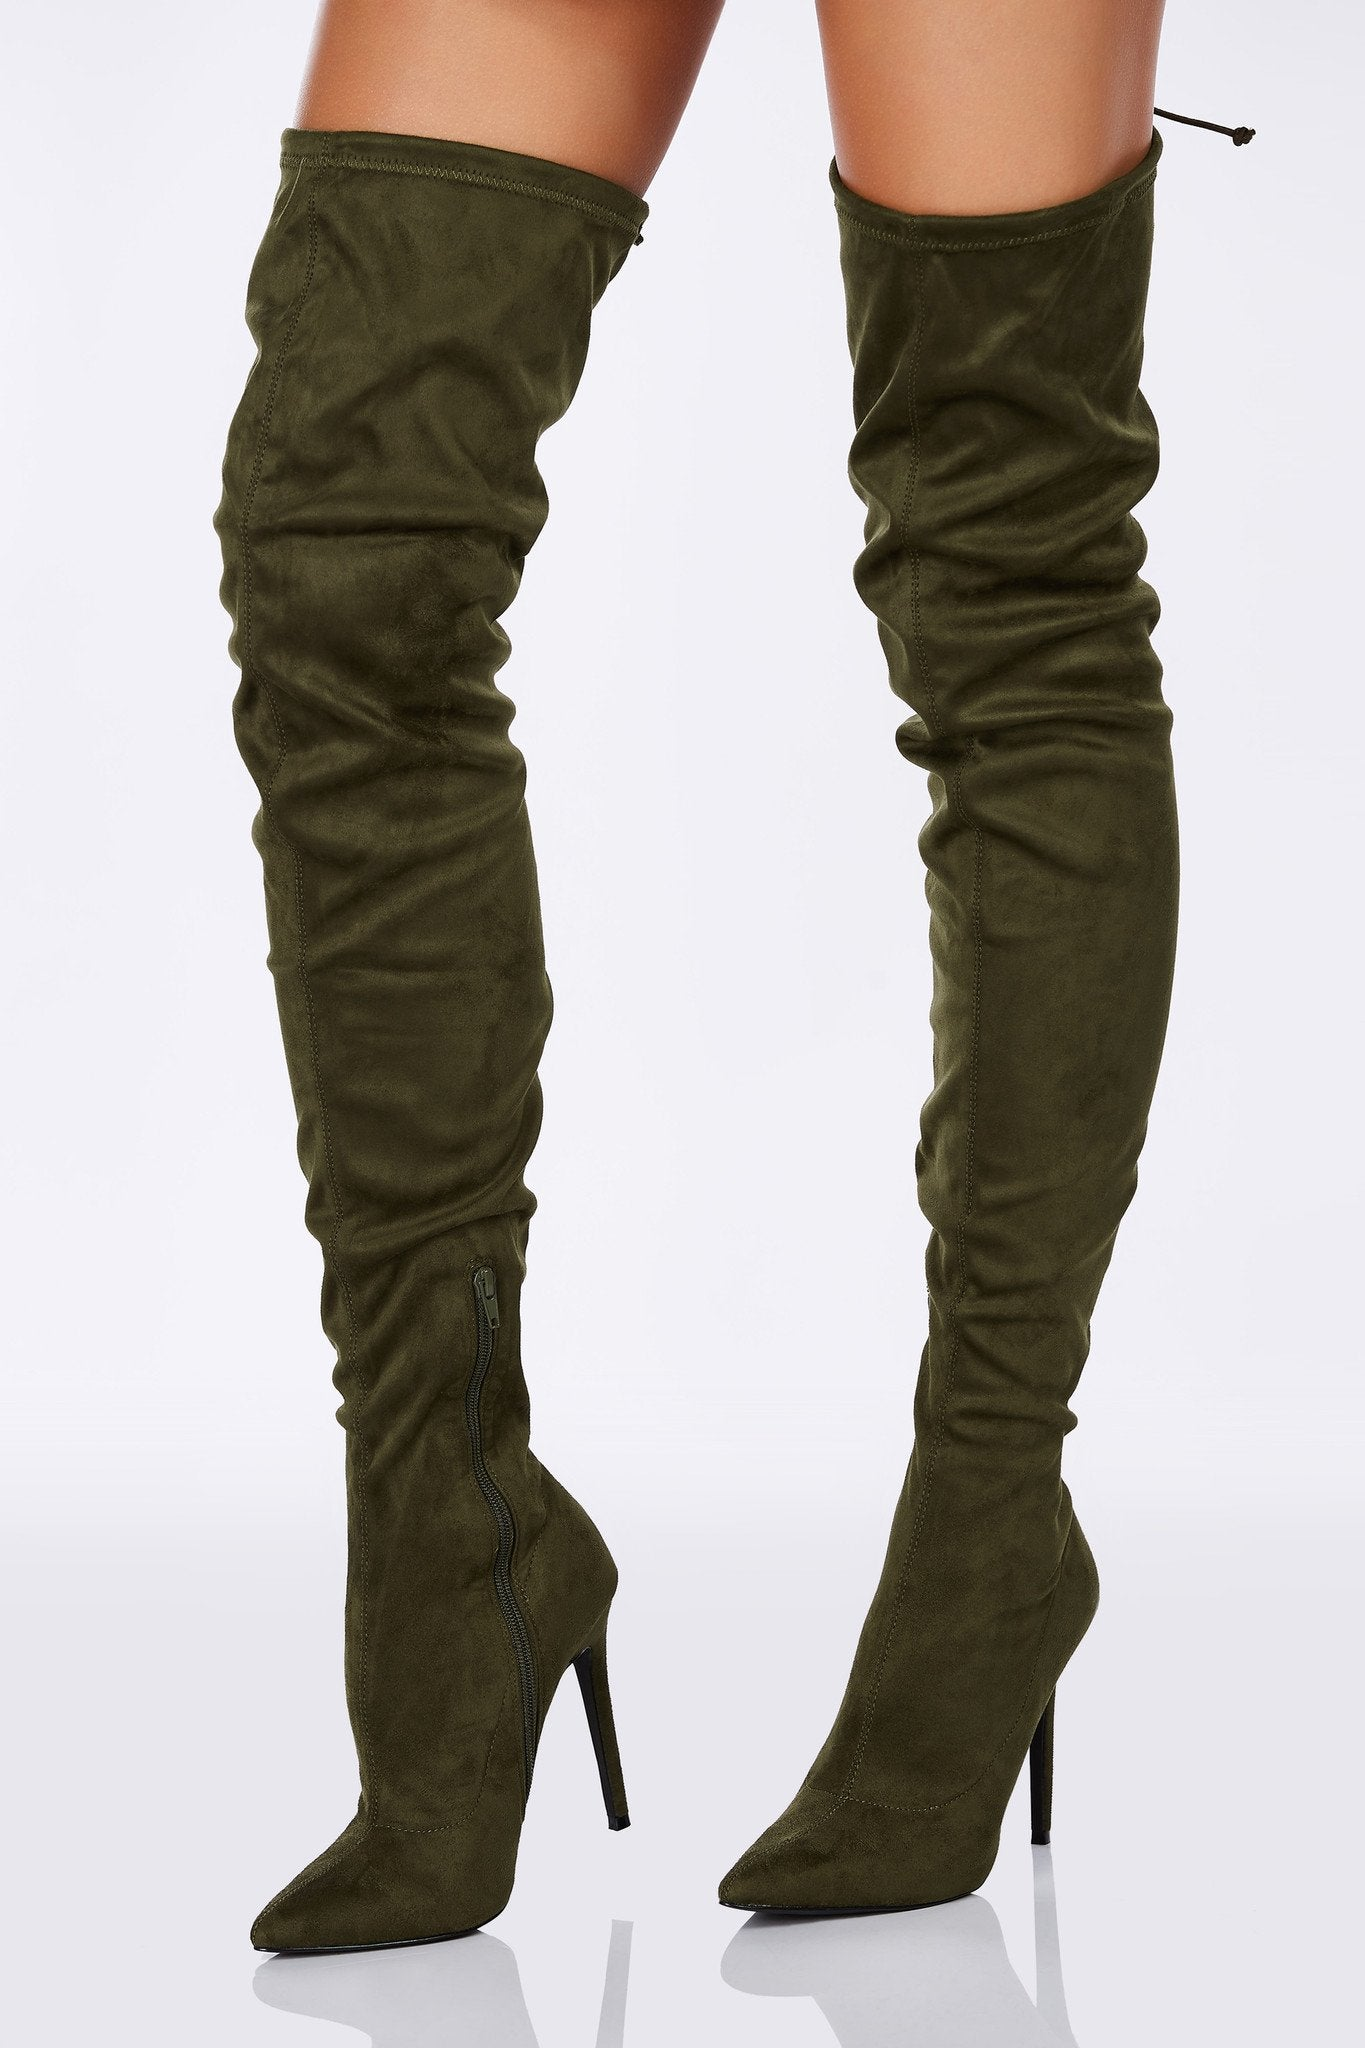 An incredibly sexy pair of thigh high boots with a sultry stiletto heel. Chic suede exterior with a sassy slim fit. Ties up at the end for fit with a side zip closure for easy access. Pair with short shorts or mini dresses!